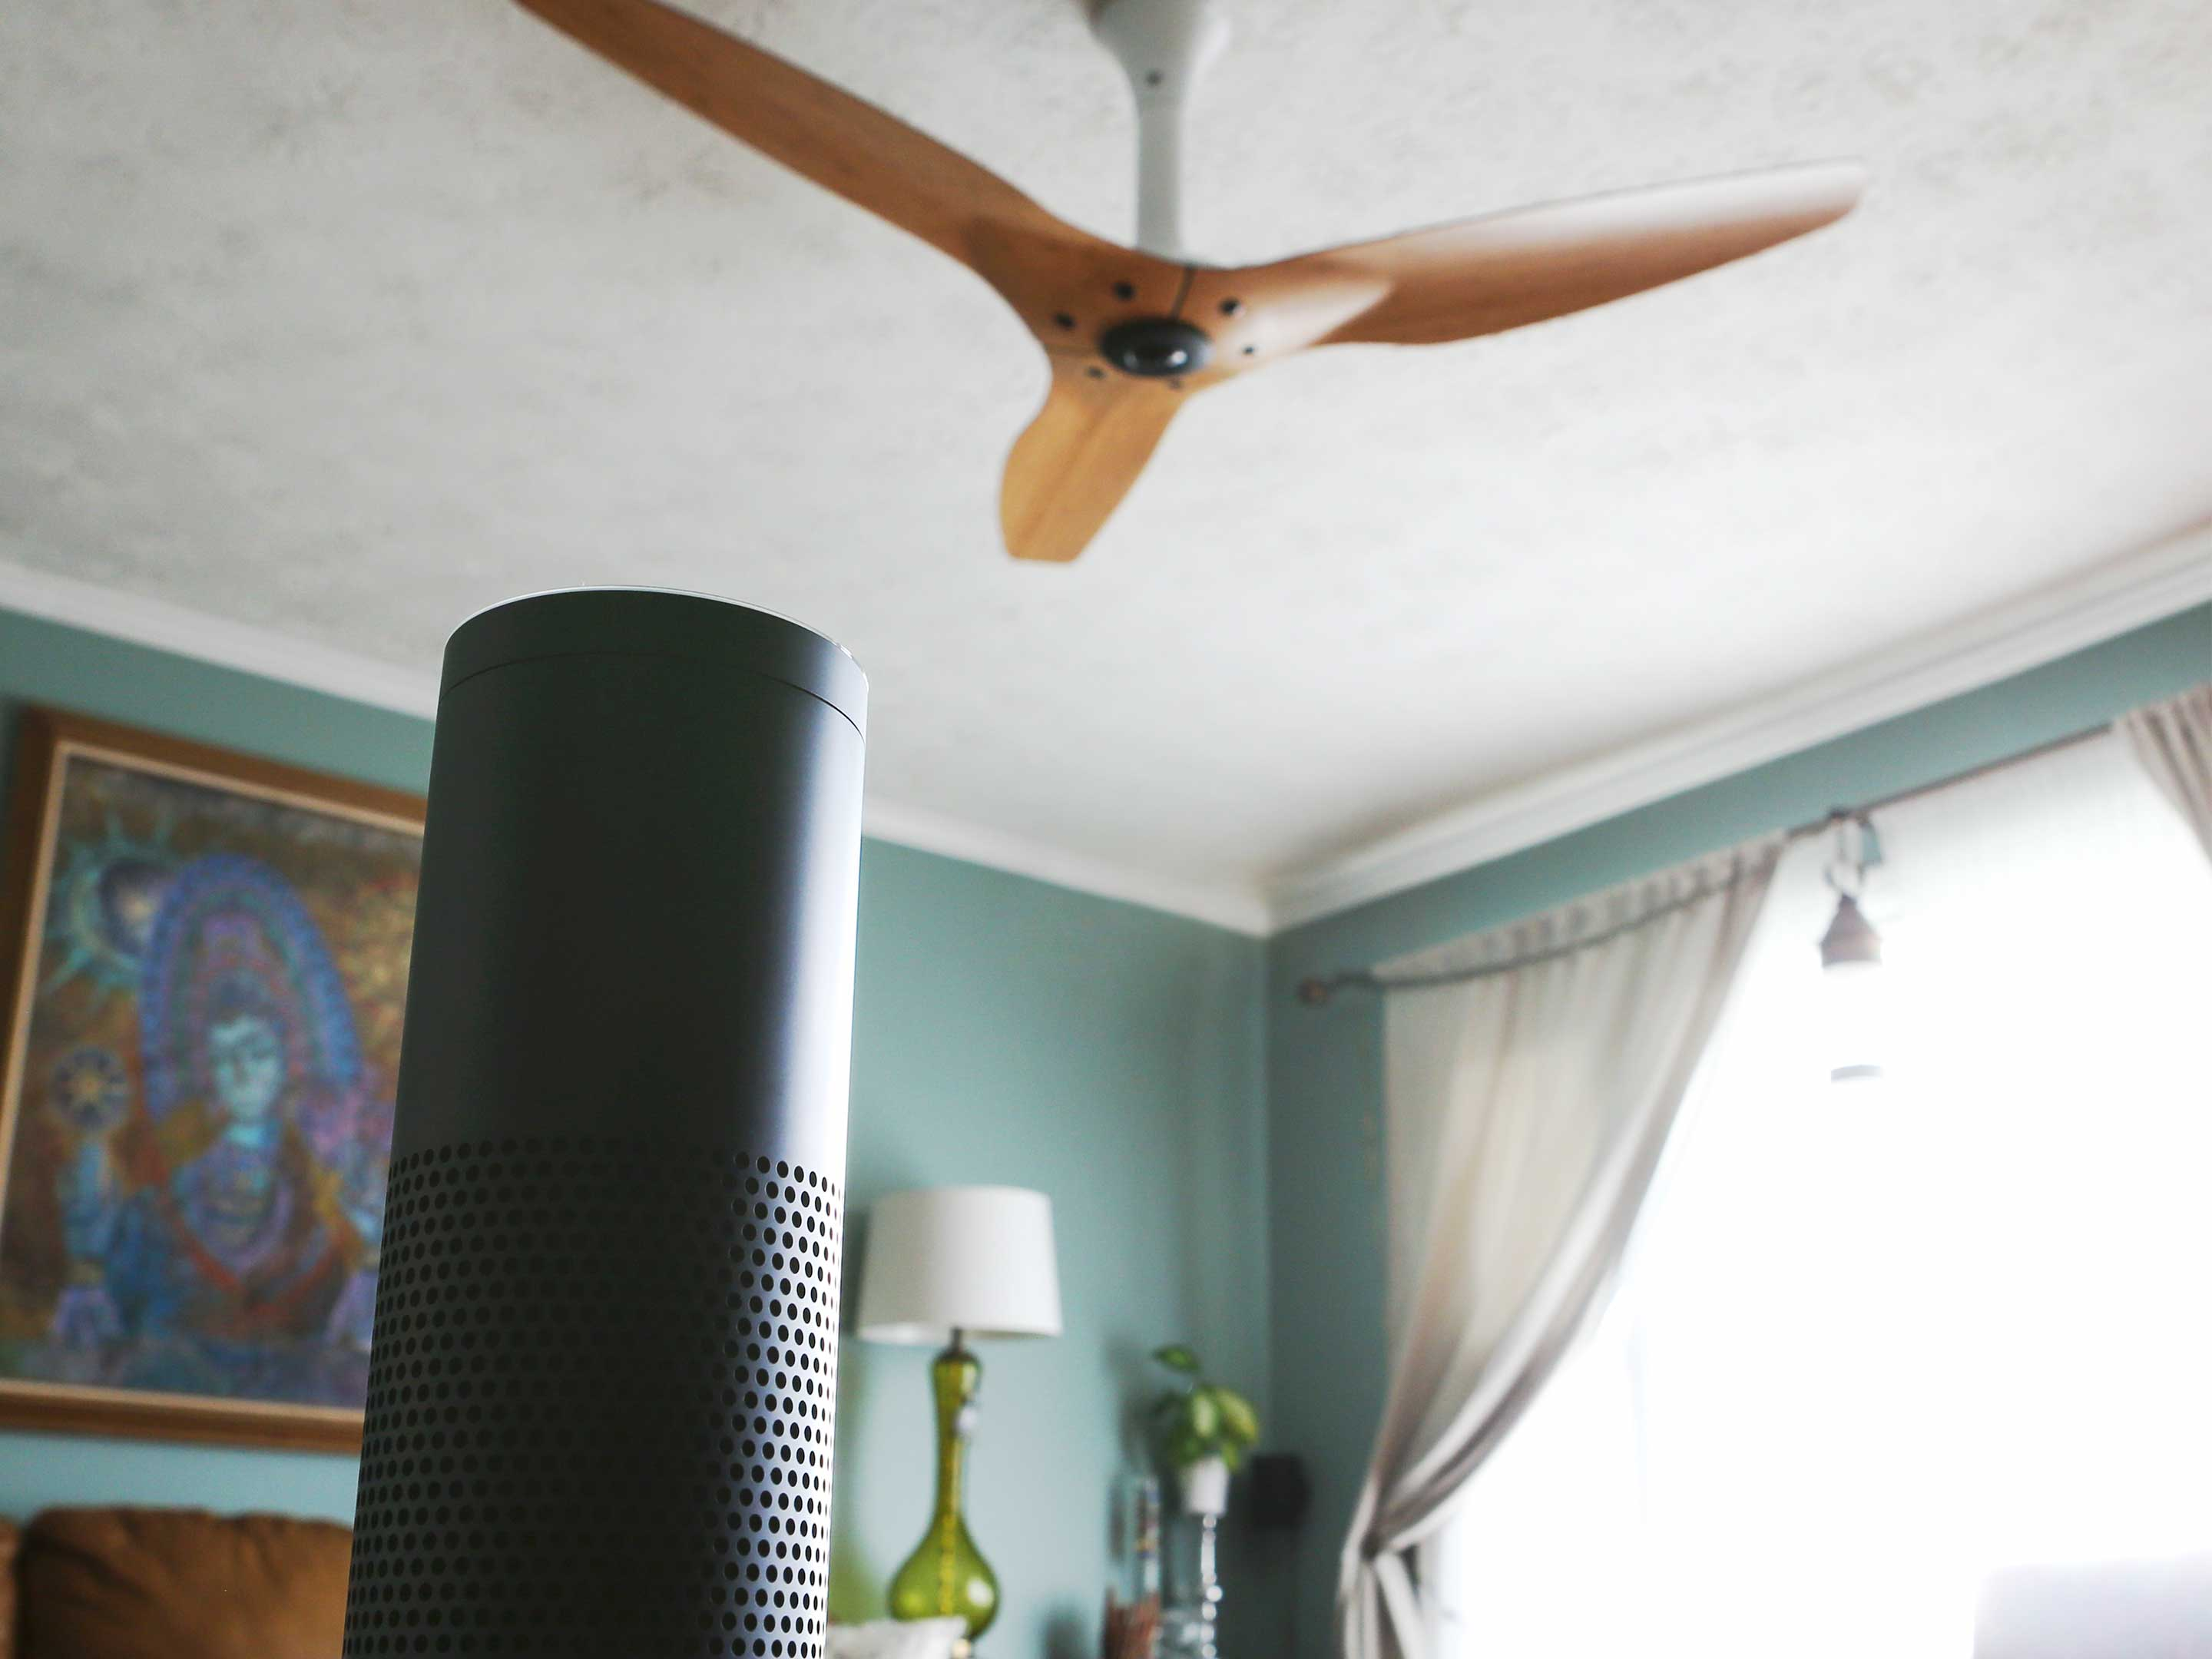 Haiku Smart Ceiling Fans Now Work With Amazon Echo Devices